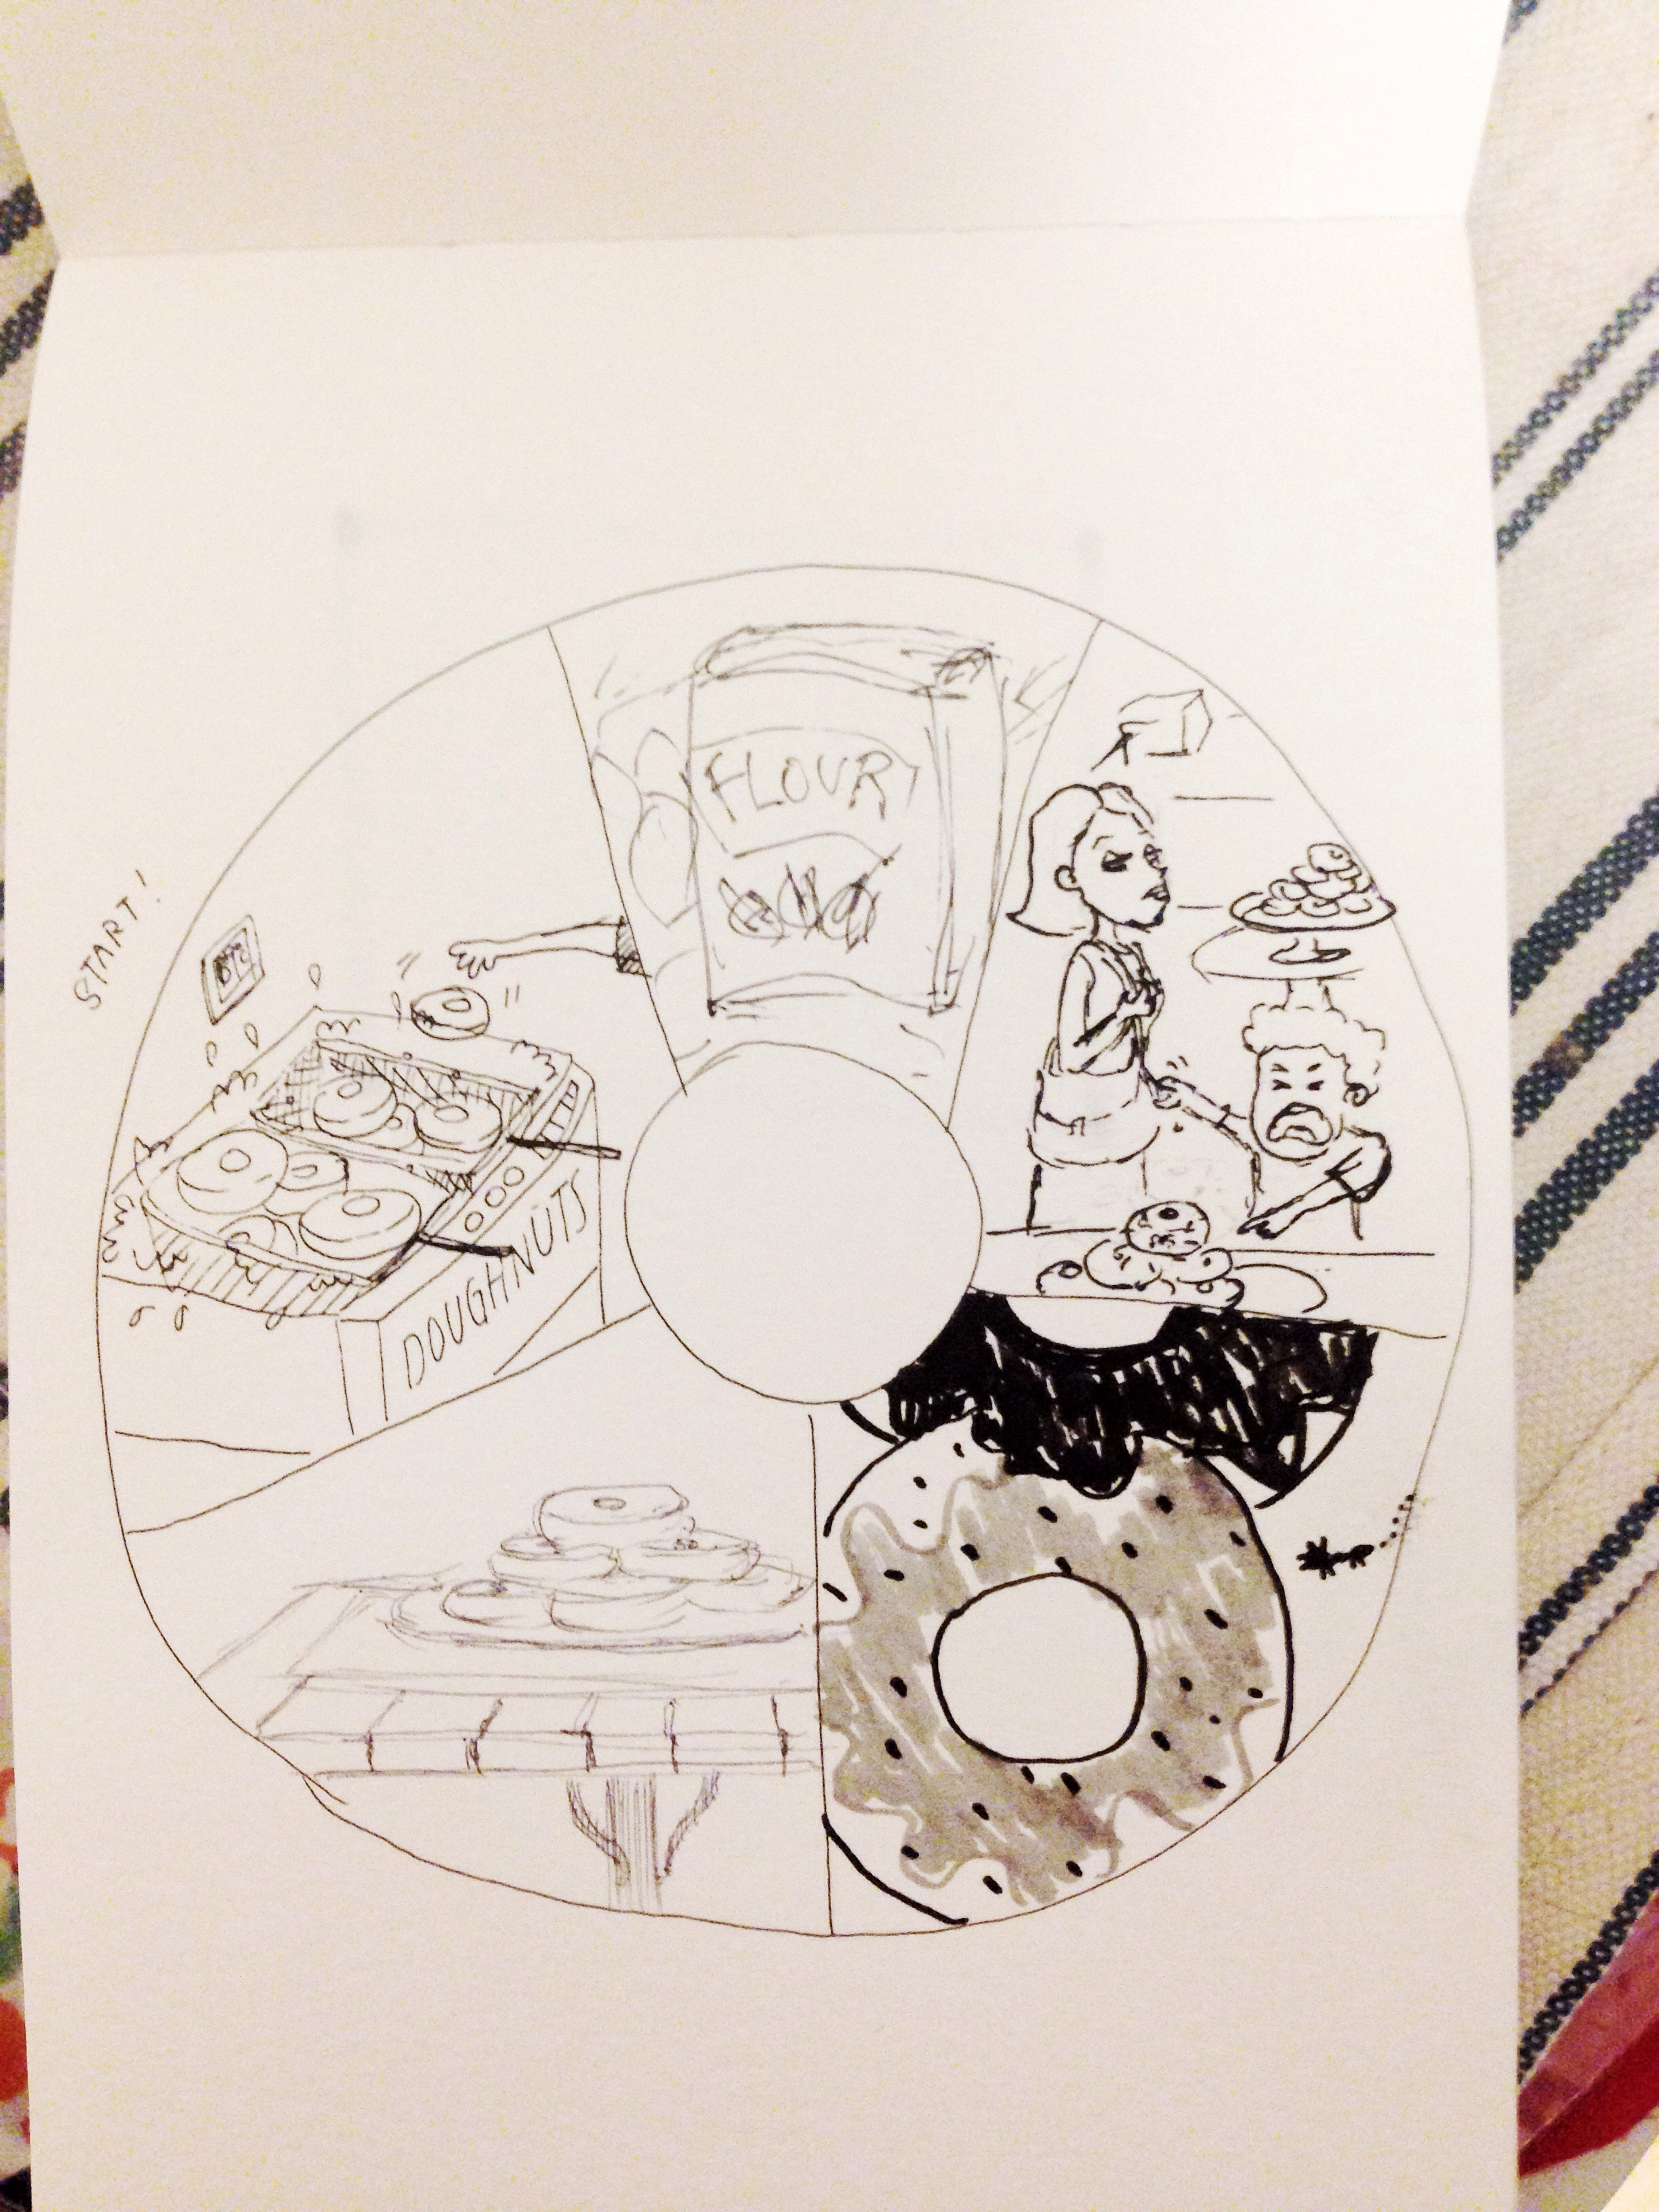 A donut comic strip on donuts that goes on an infinite loop! Interesting to see how the other participants continued my story of frying donuts.